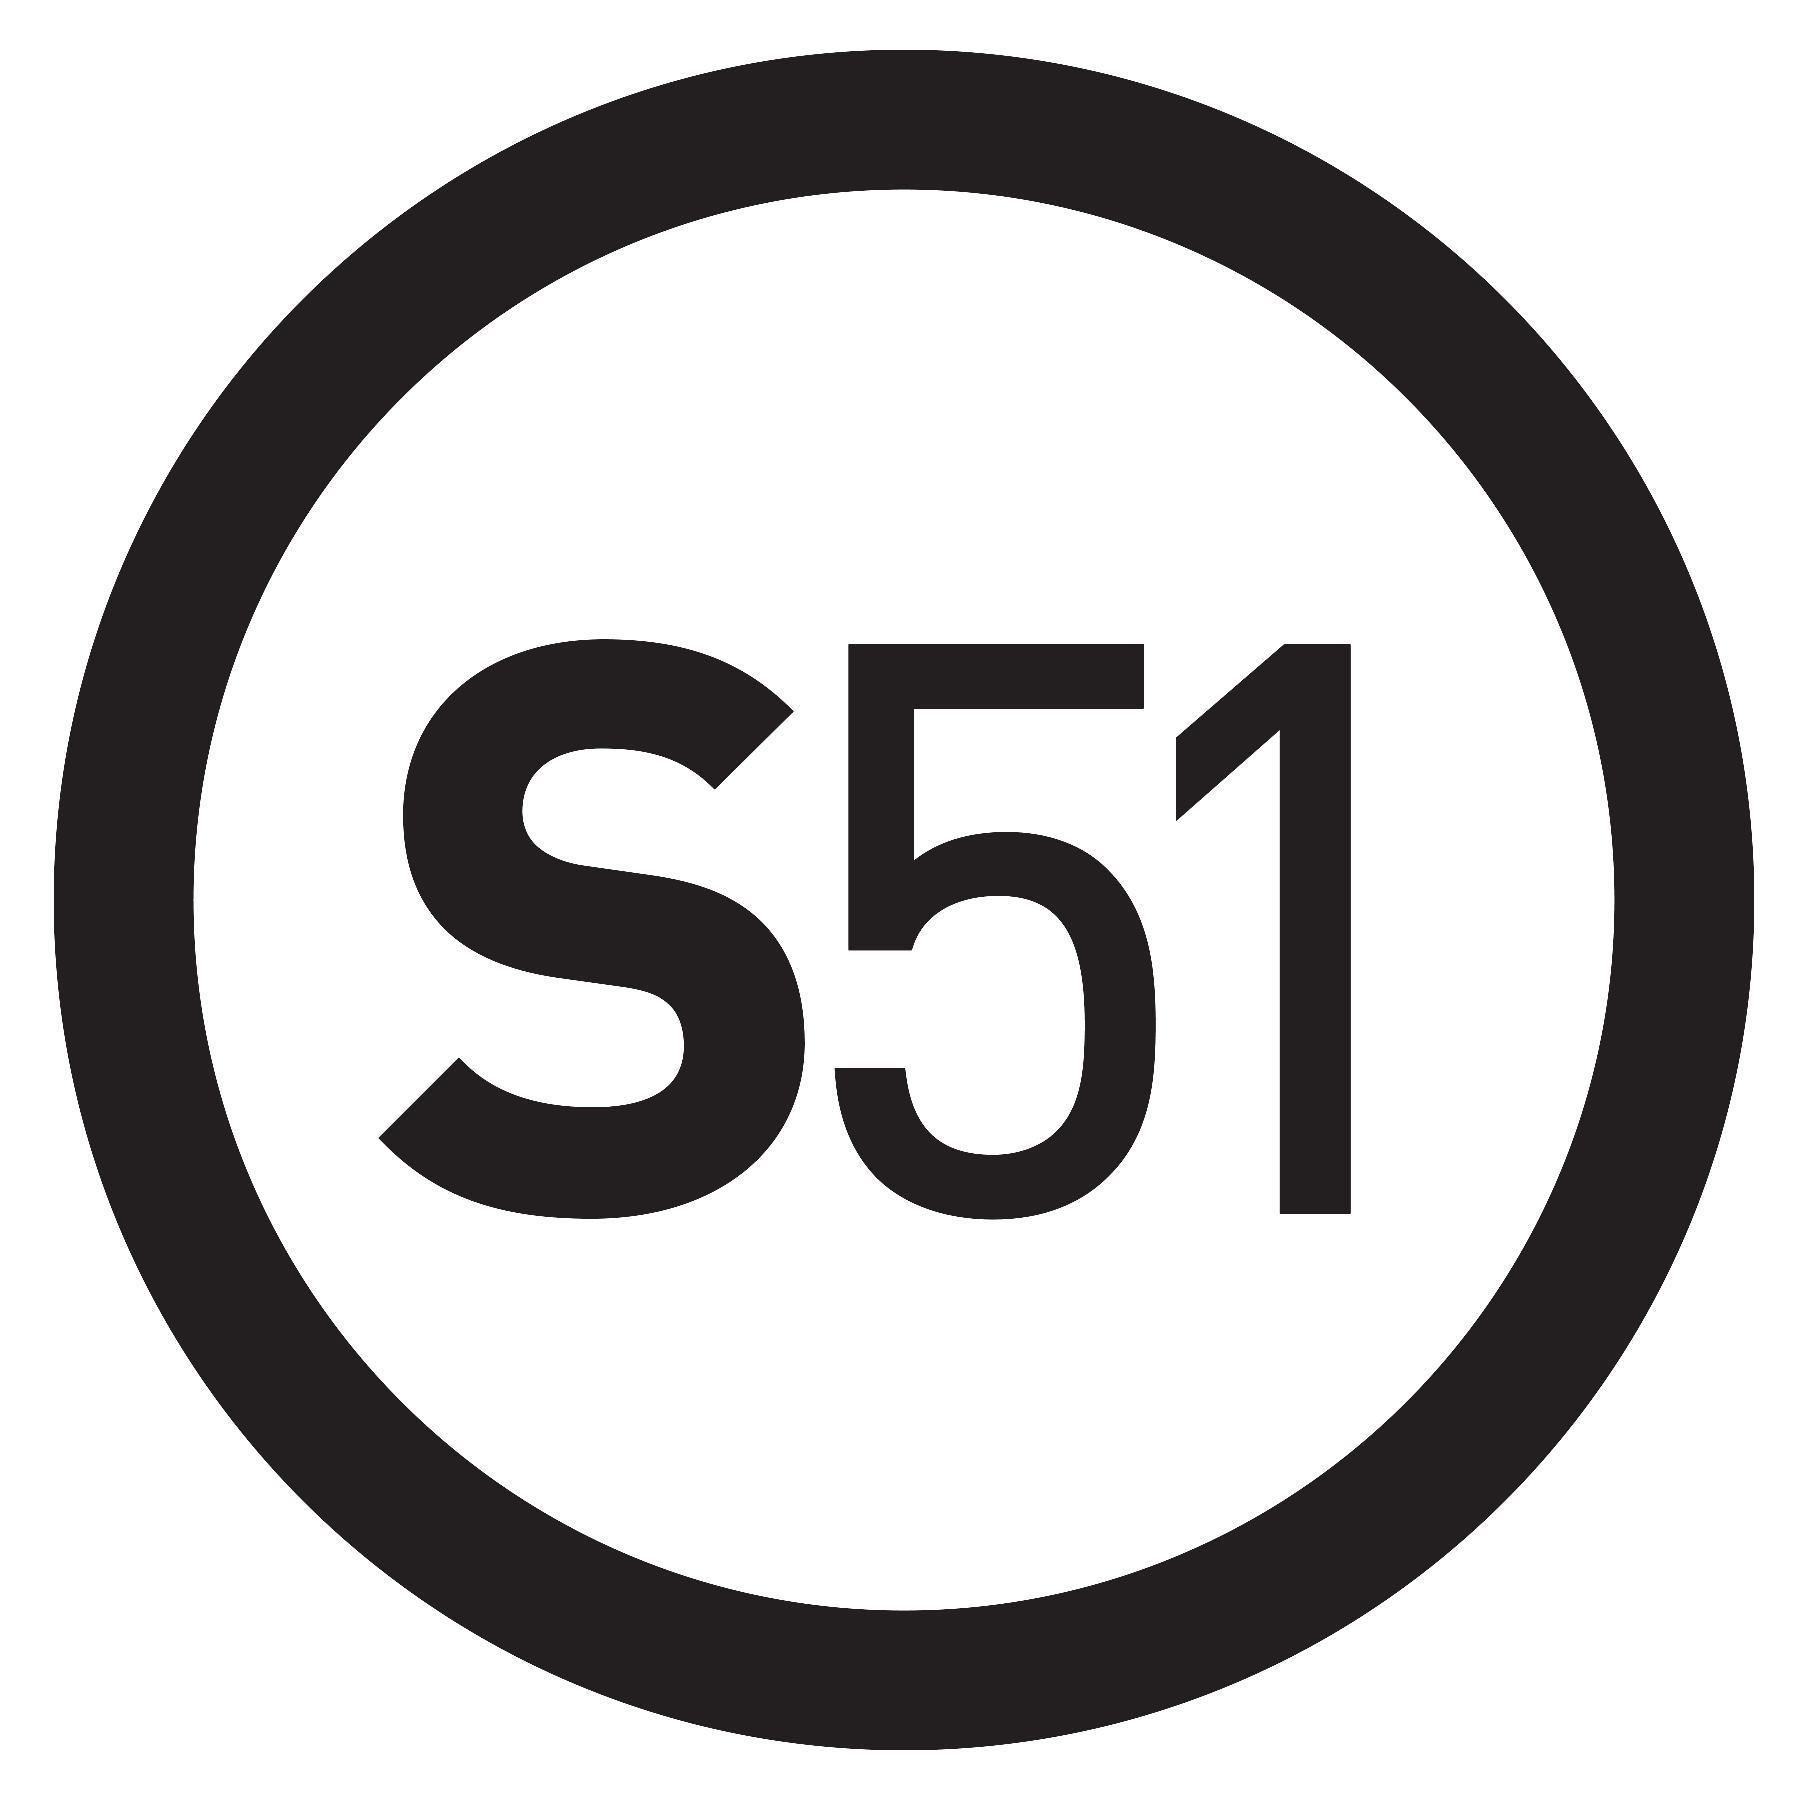 Surface51 logo